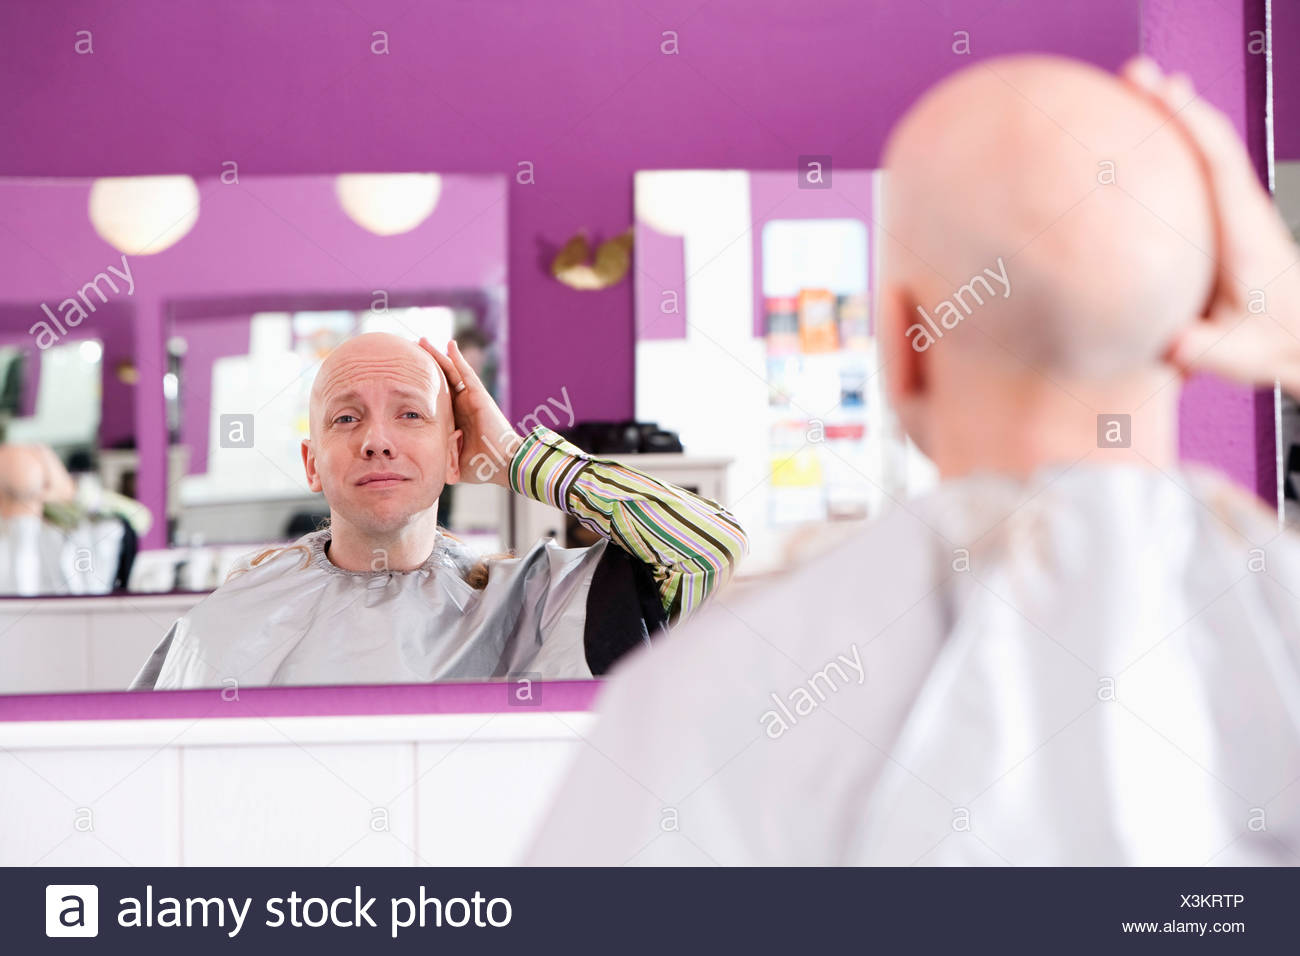 bald man at hair dresser looking into mirror - Stock Image